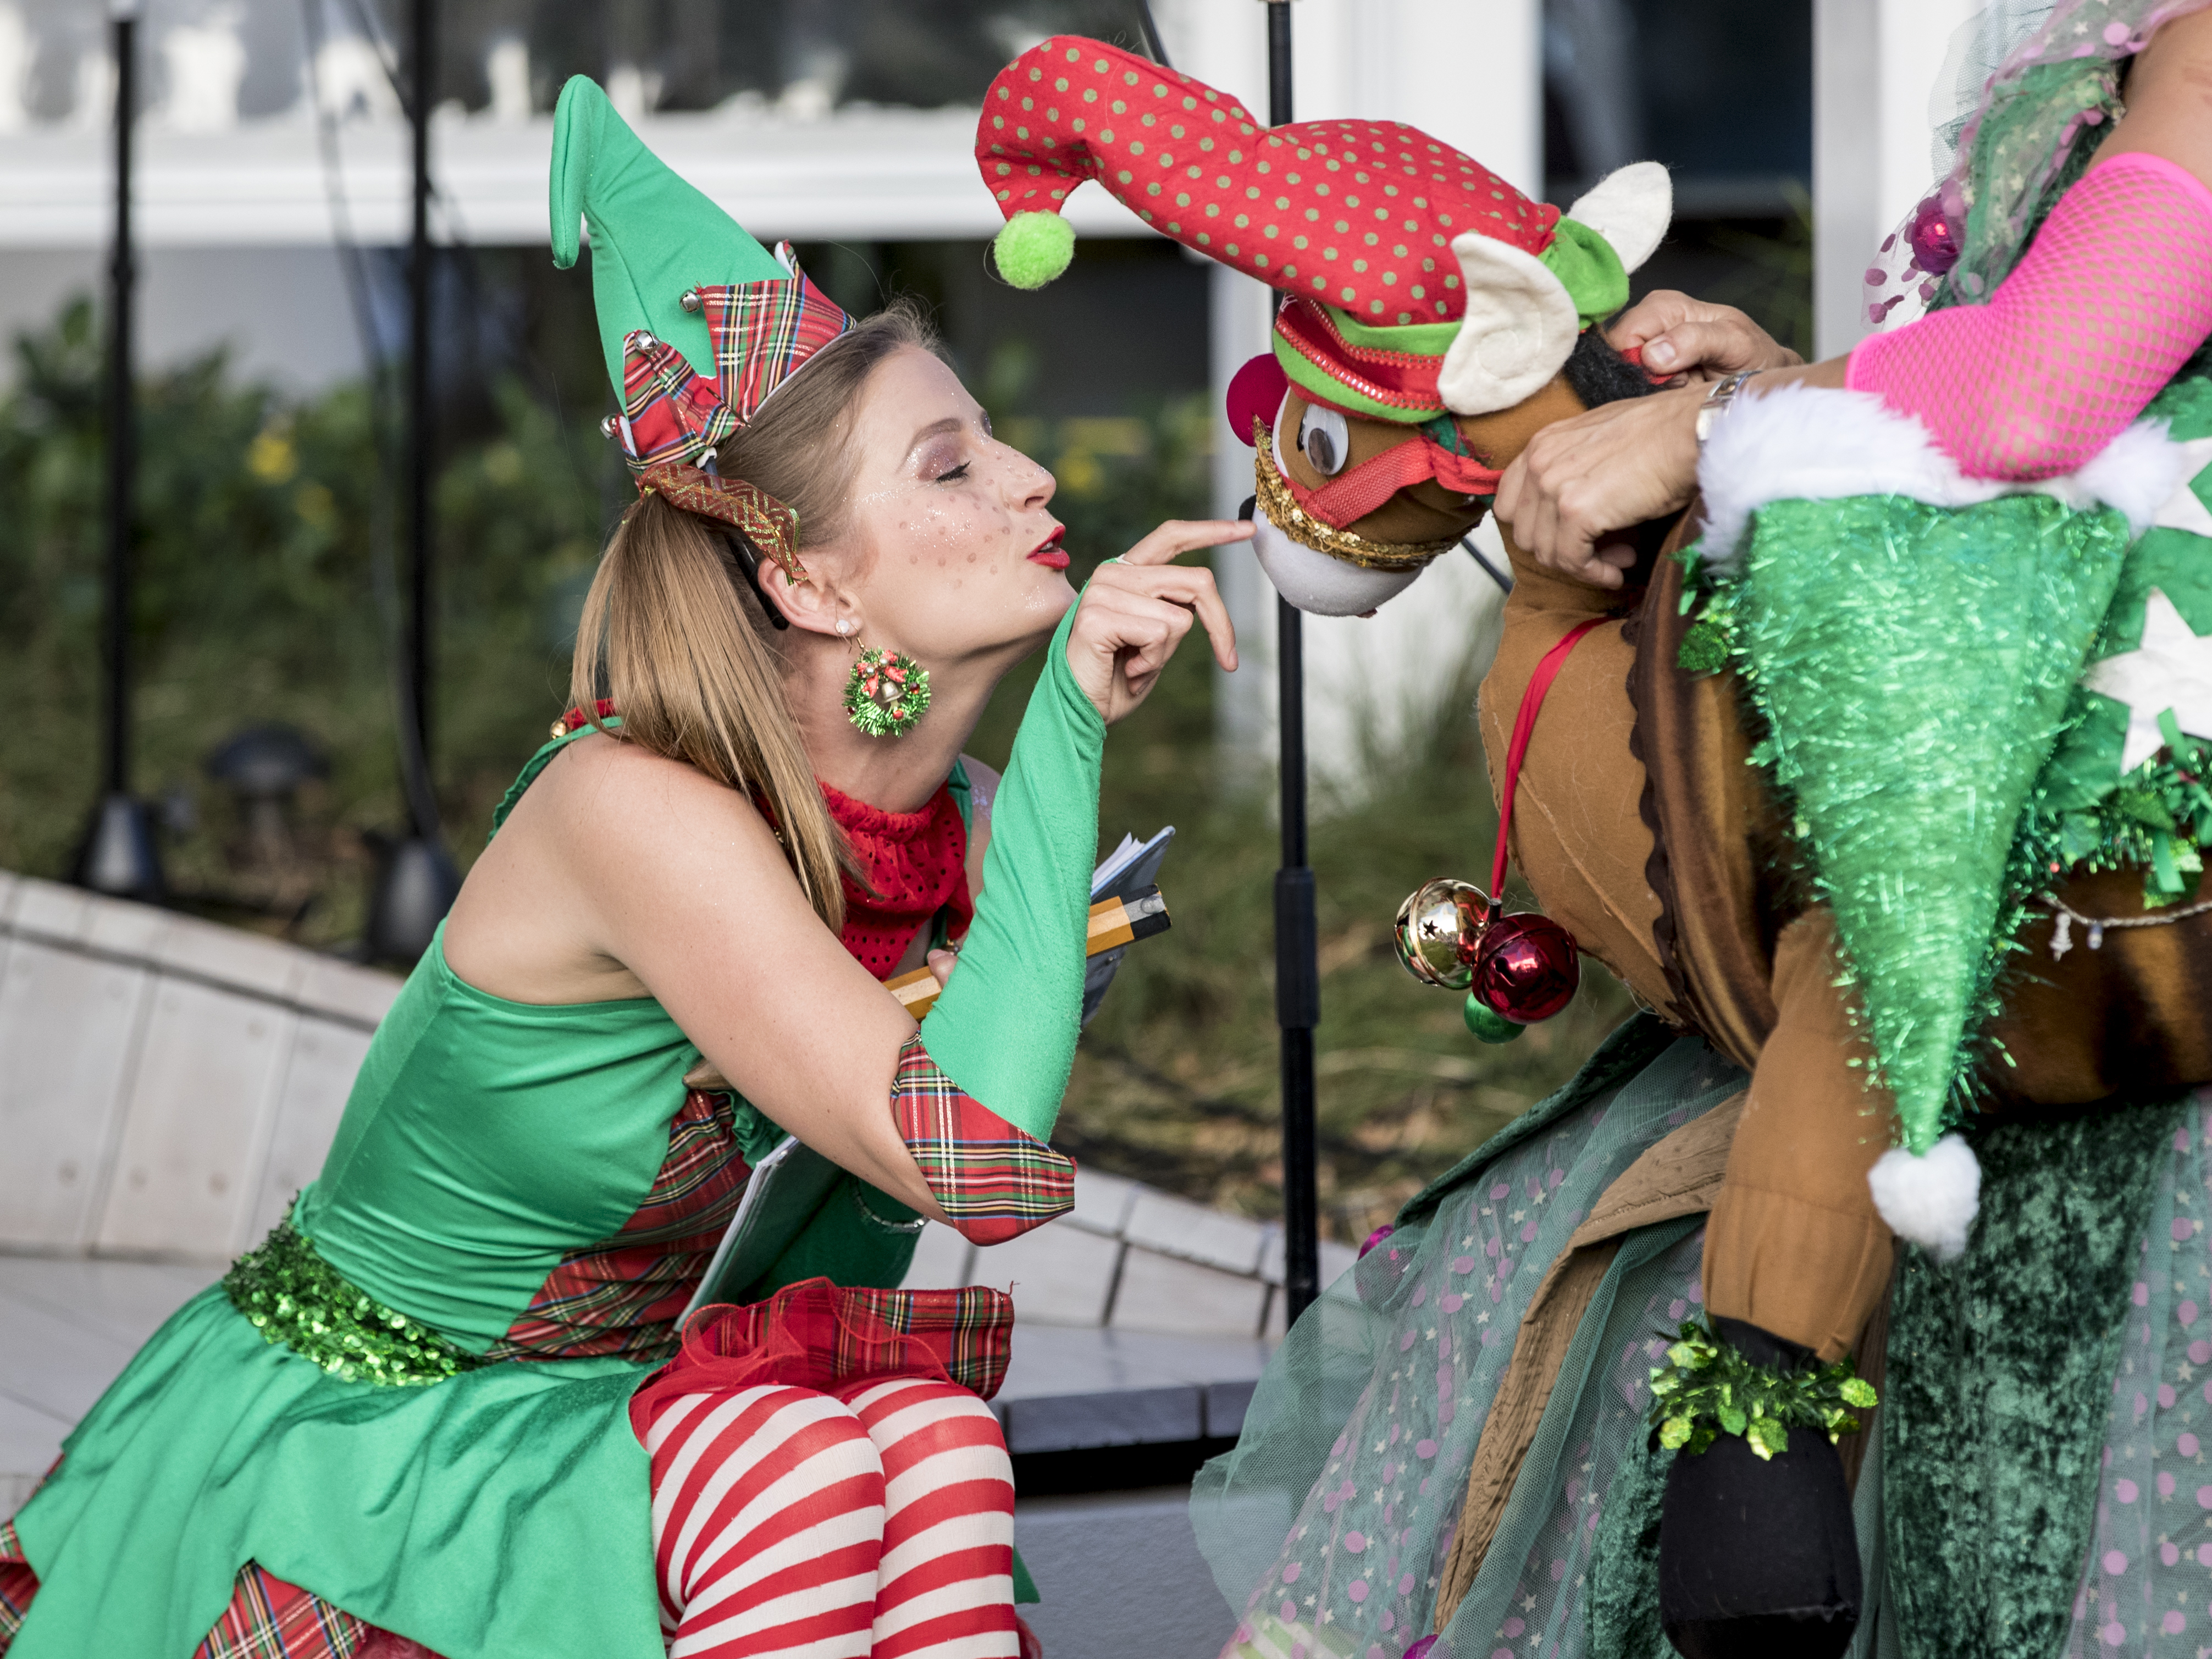 ZING THE CHEEKY ELF